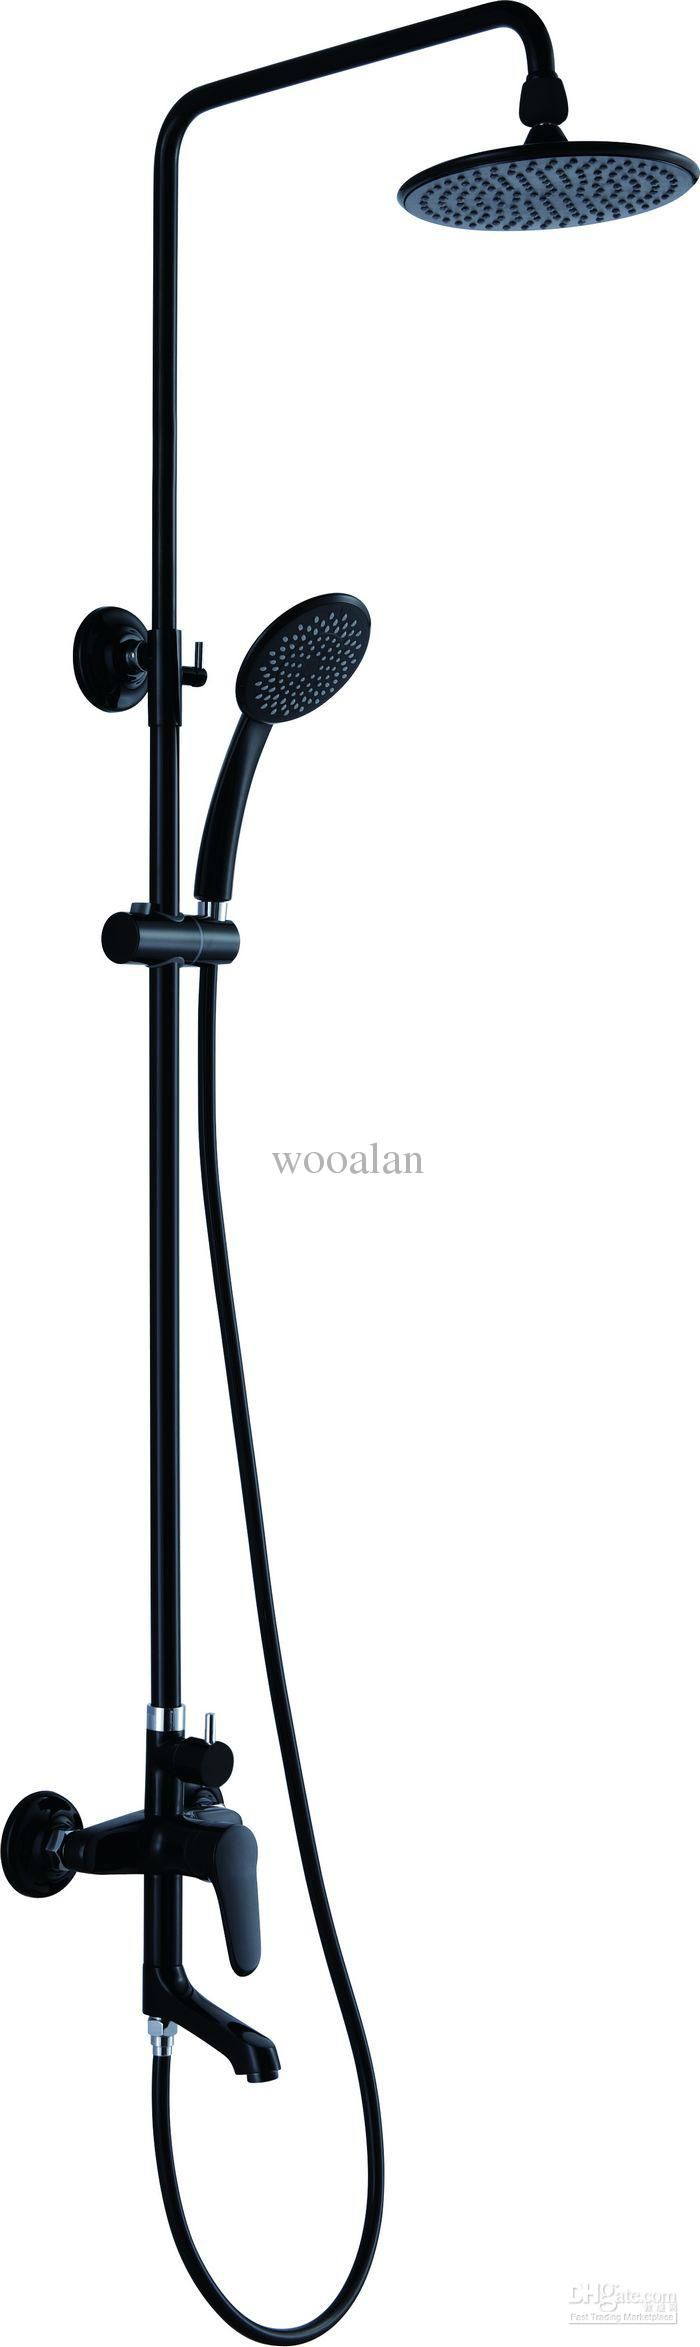 Wholesale Bathroom Shower Set - Buy 2013 New Luxury Black Color Exposed Bath And Shower Solid Brass Shower Mixer Faucets 80658, $248.91 | DH...